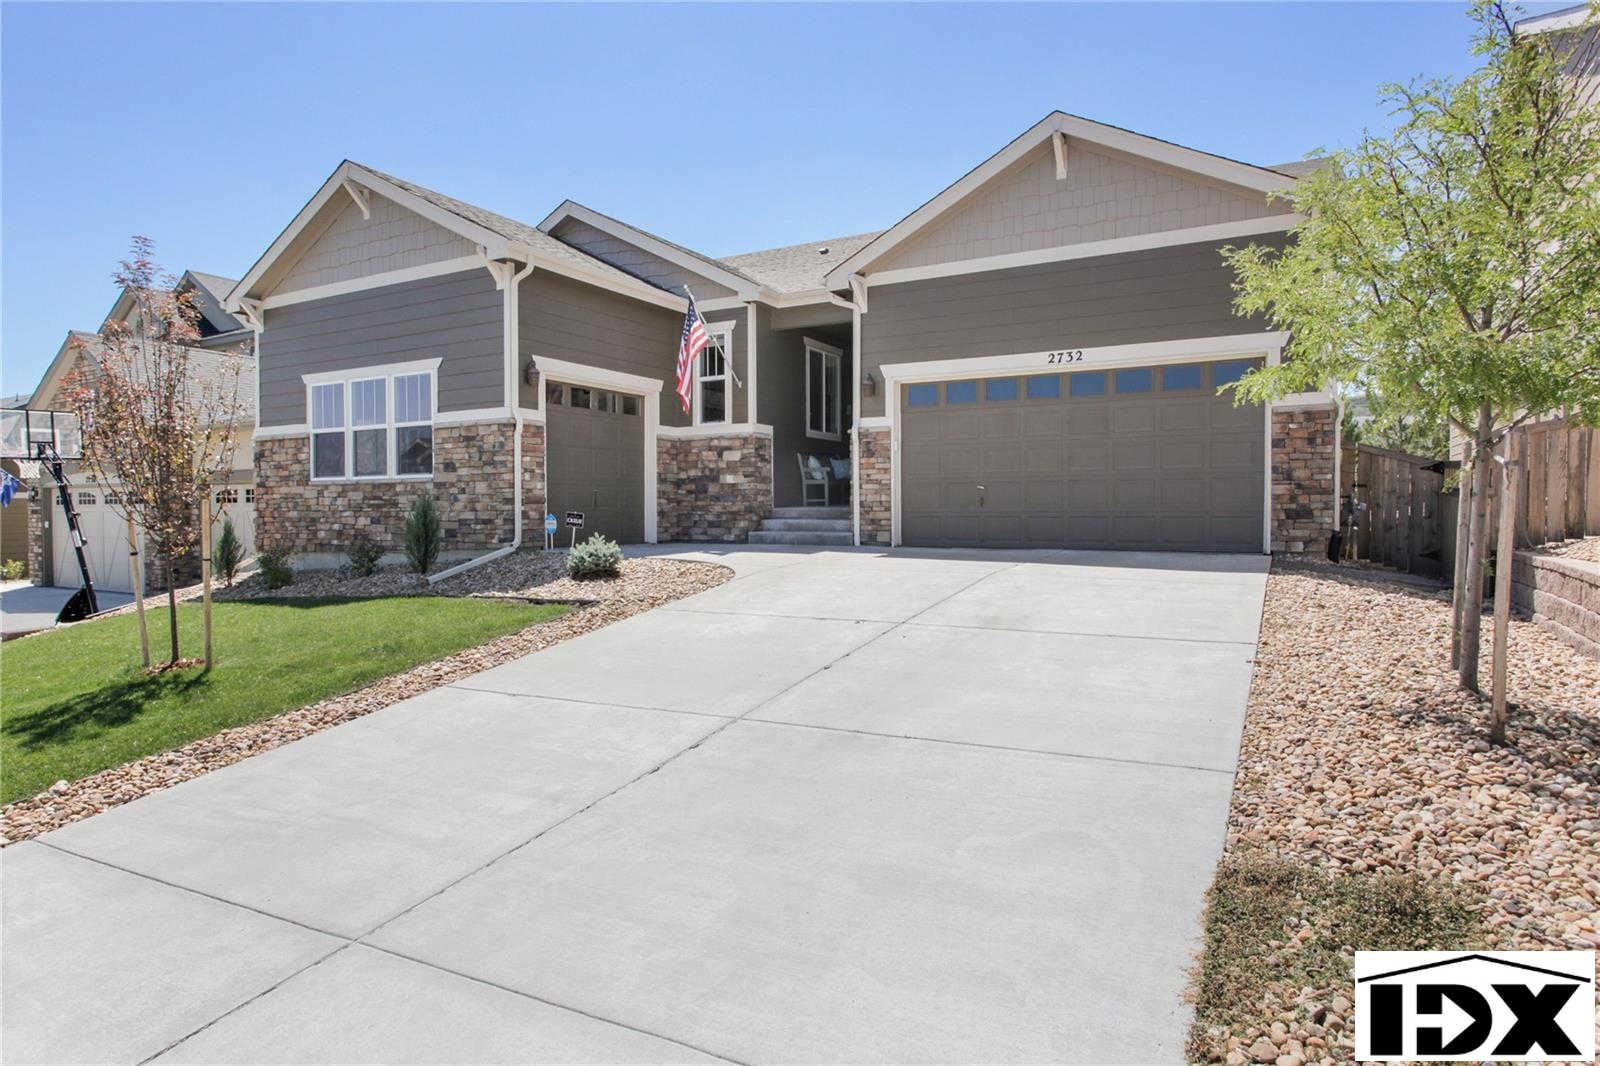 2732 Rising Moon Way, Castle Rock, CO 80109 now has a new price of $669,500!